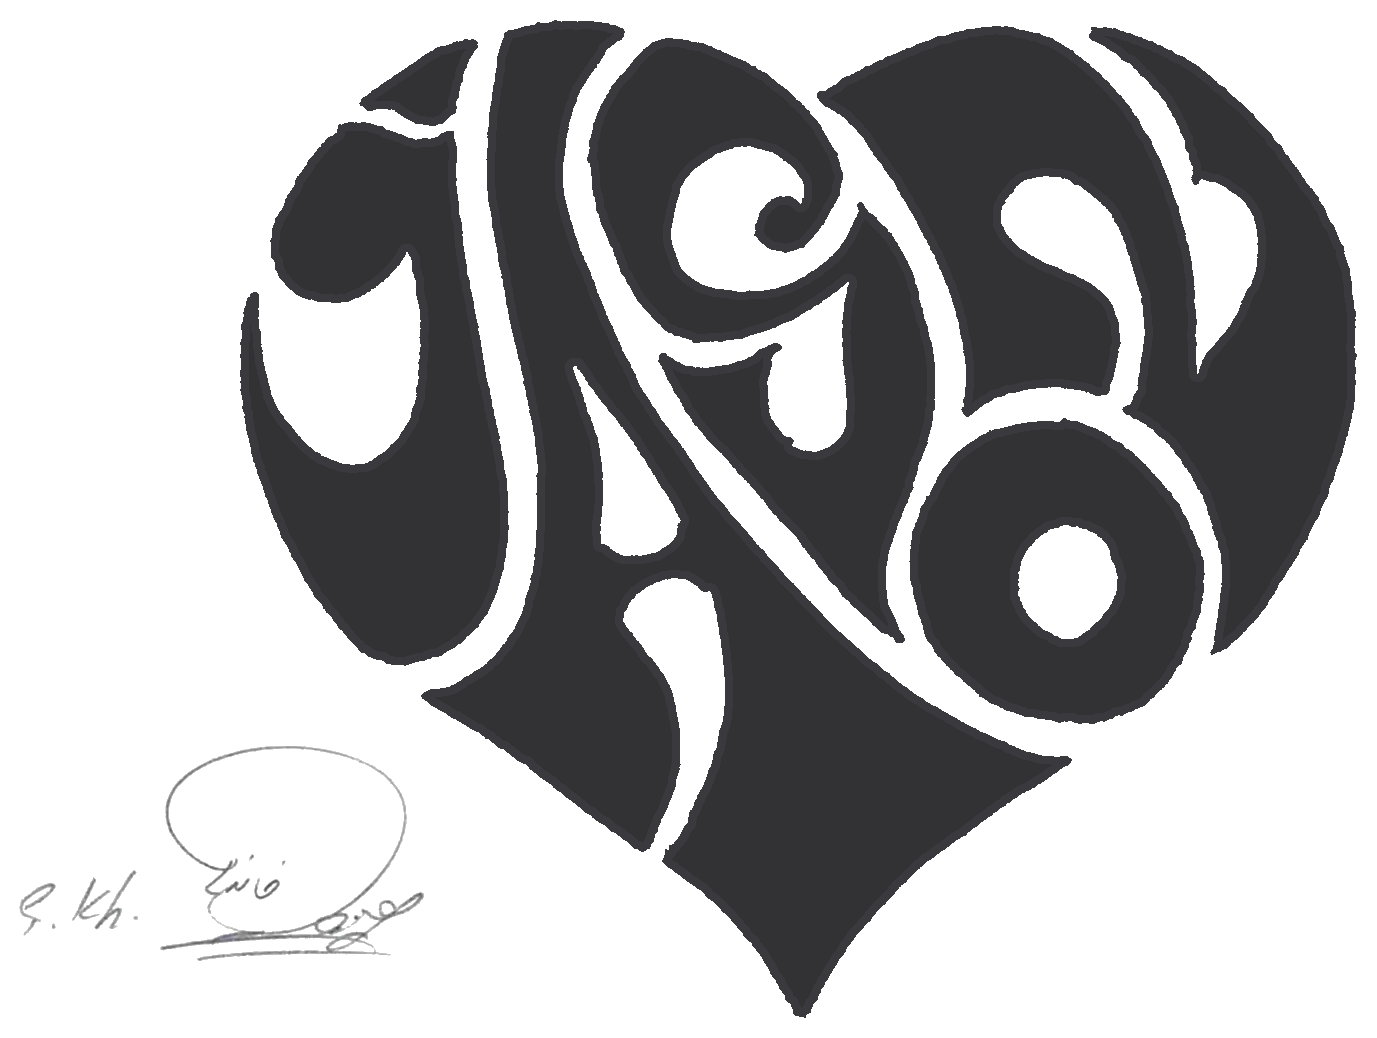 Jason Heart Black